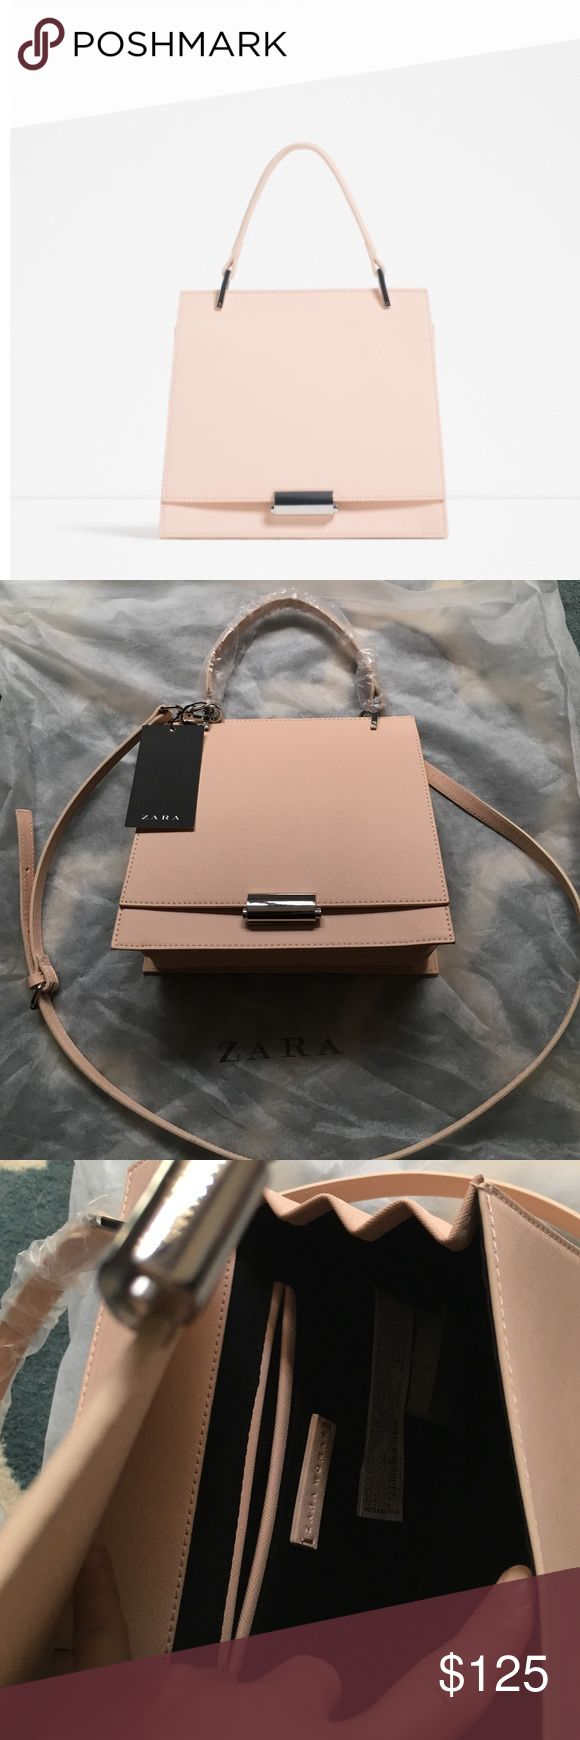 """HP NWT Zara Embossed Blush Mini City Bag Rare blush colored minibag from Zara SS16 collection.  Second pic is actual bag: It is NWT and has been stored in dustbag.  Wrapping still on the handle.  Measures 8.5"""" by 9.5"""" by 4"""".  Faux leather with silver tone hardware, gusseted bottom, adjustable and removable strap. Zara Bags Crossbody Bags"""